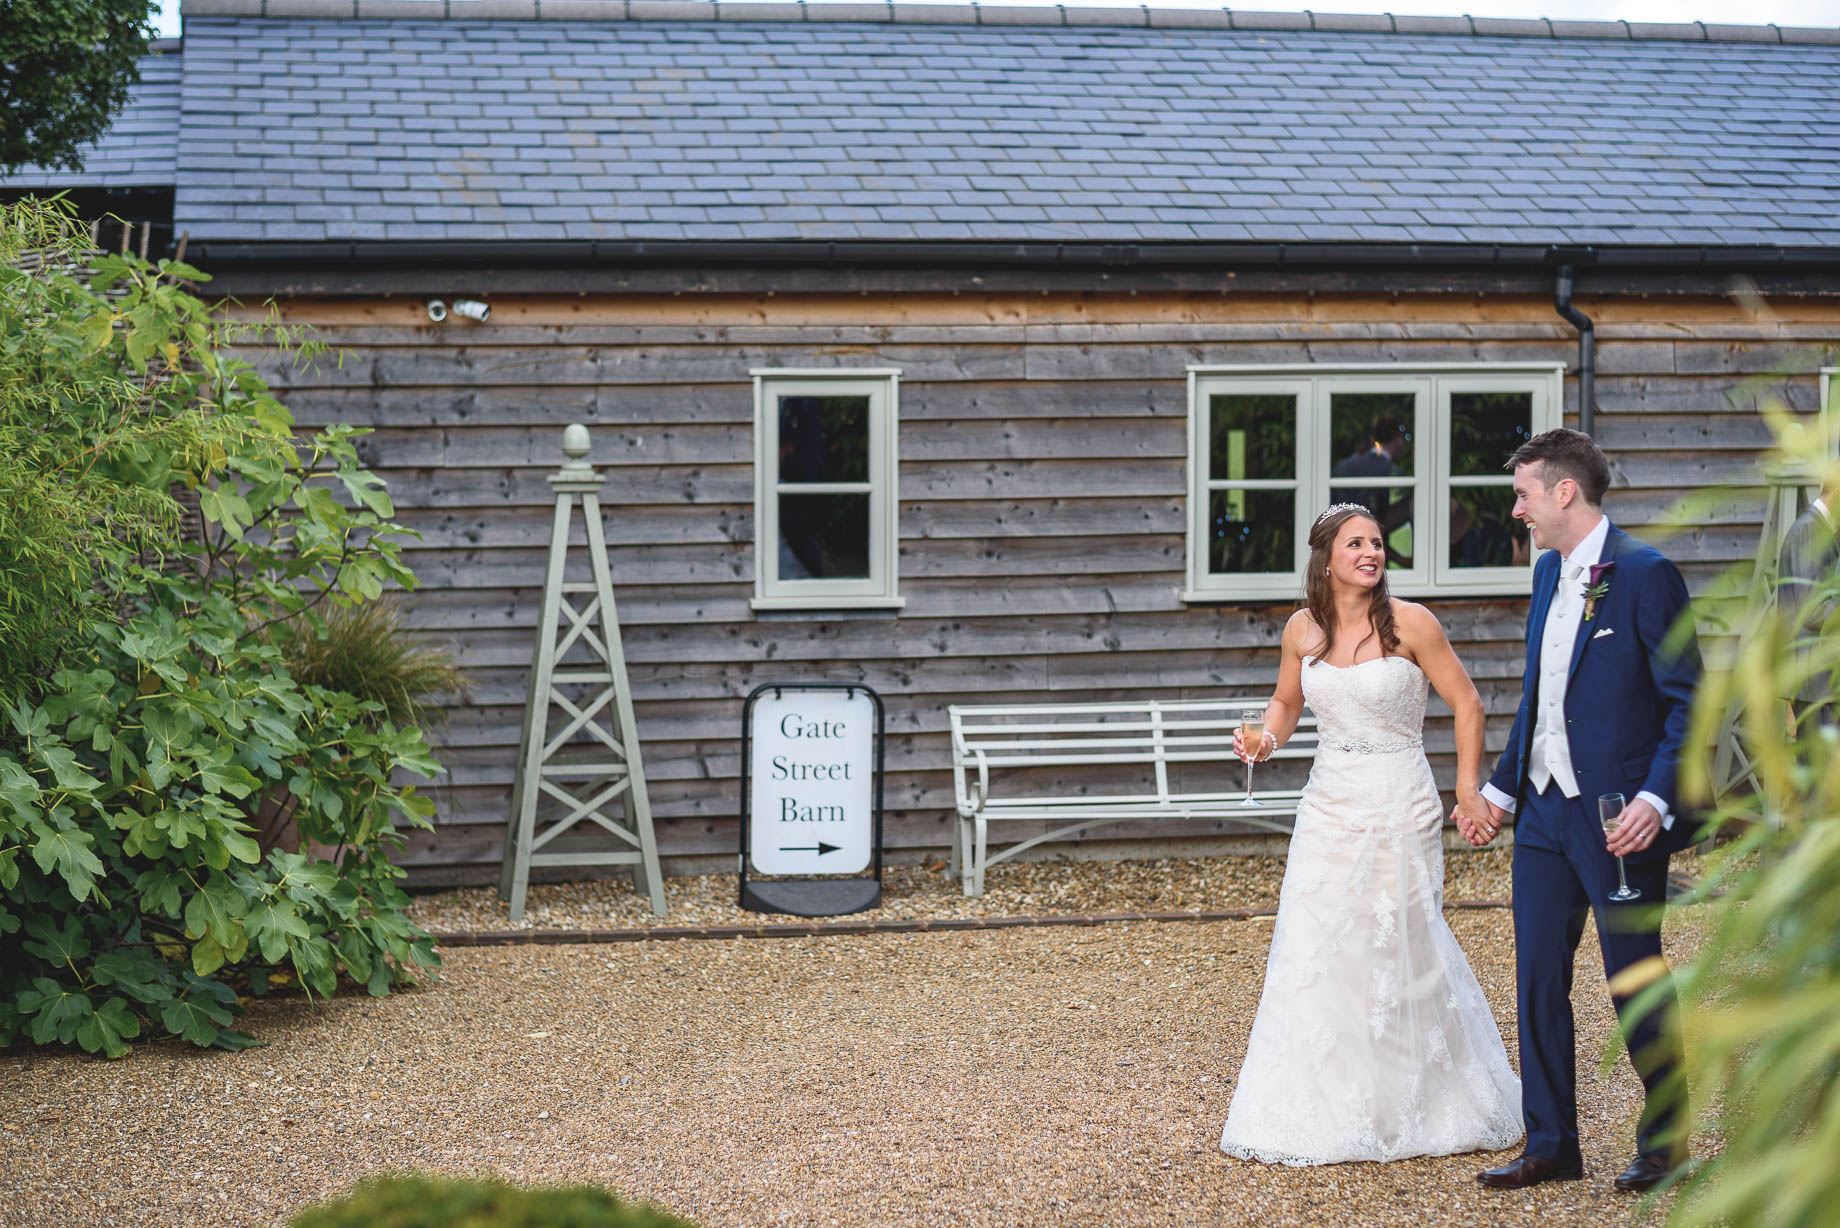 Gate Street Barn wedding photography - Guy Collier - Claire and Andy (107 of 192)